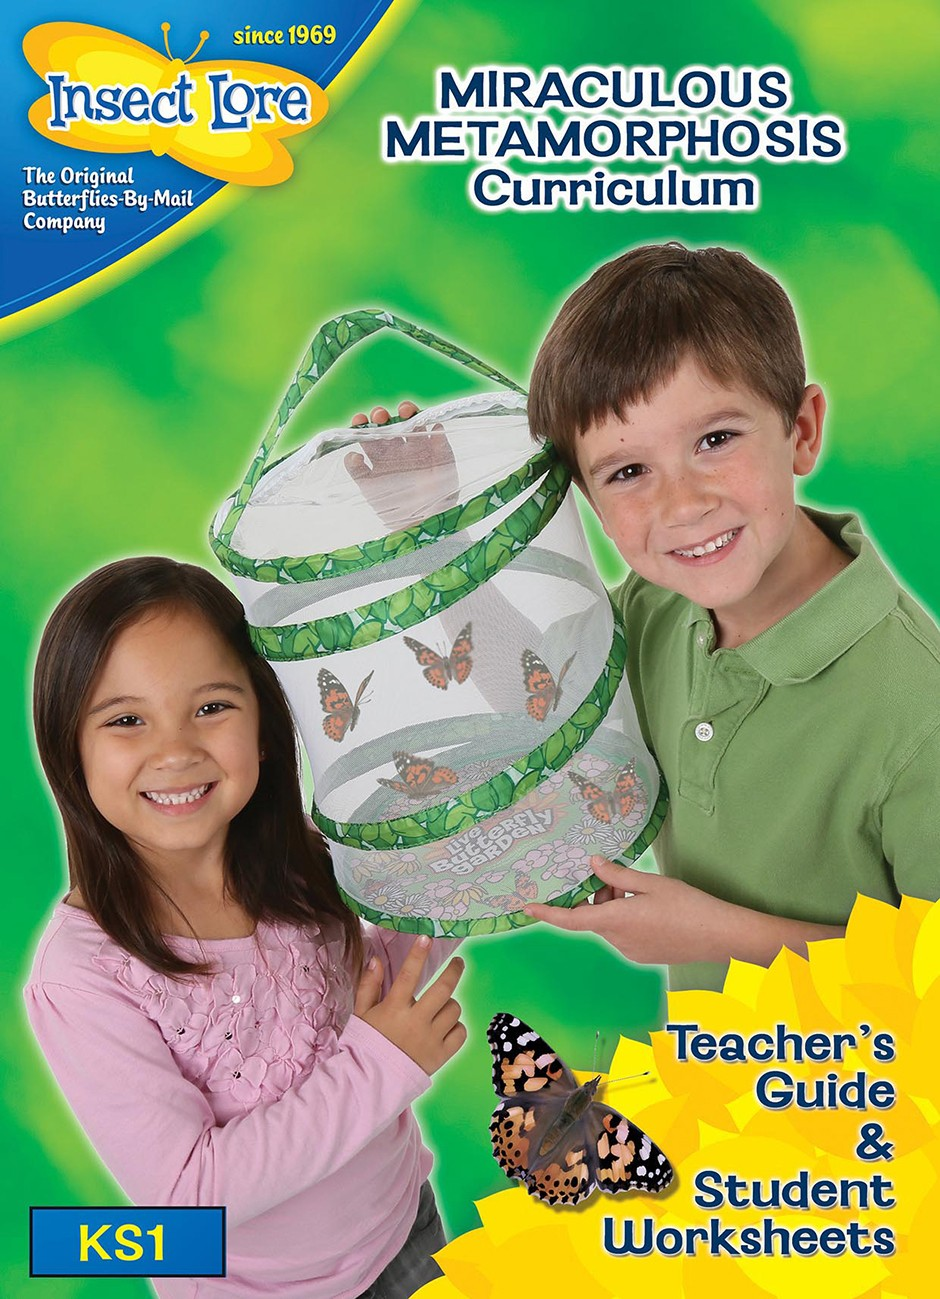 New Butterfly Curriculum Early Years